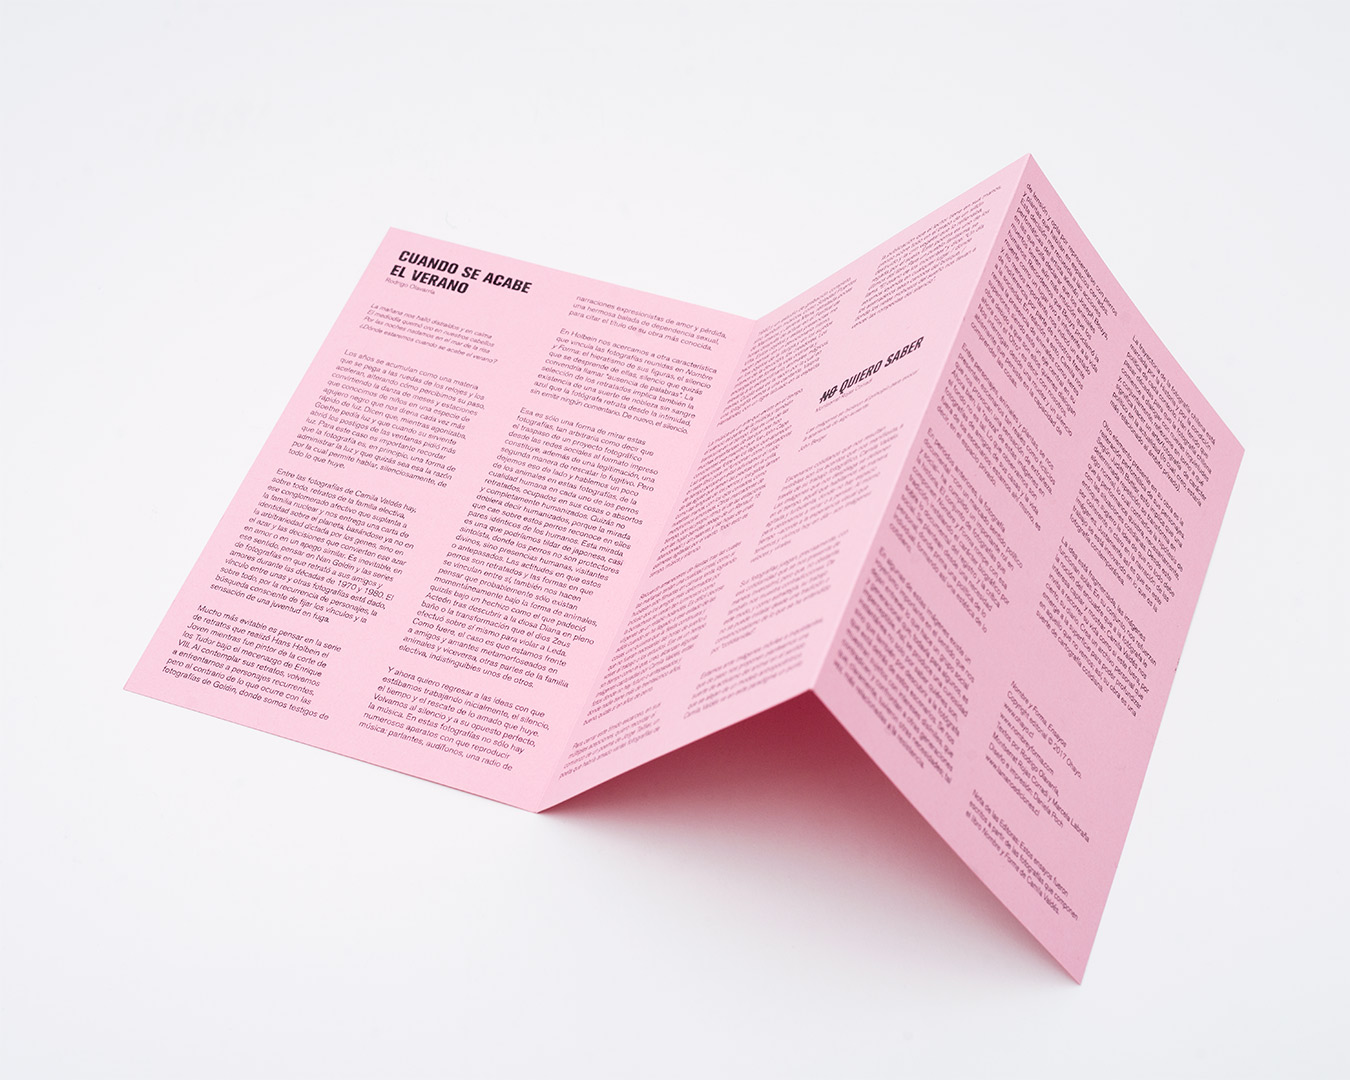 - MISS READ: Berlin Art Book Festival 2019May 3 – 5, 2019at Haus der Kulturen der WeltJohn-Foster-Dulles-Allee 1010557 BerlinFREE ENTRYOpening HoursFriday 5-9pm // Opening Party 9pm till late.Saturday 12-7pmSunday 12-7pm